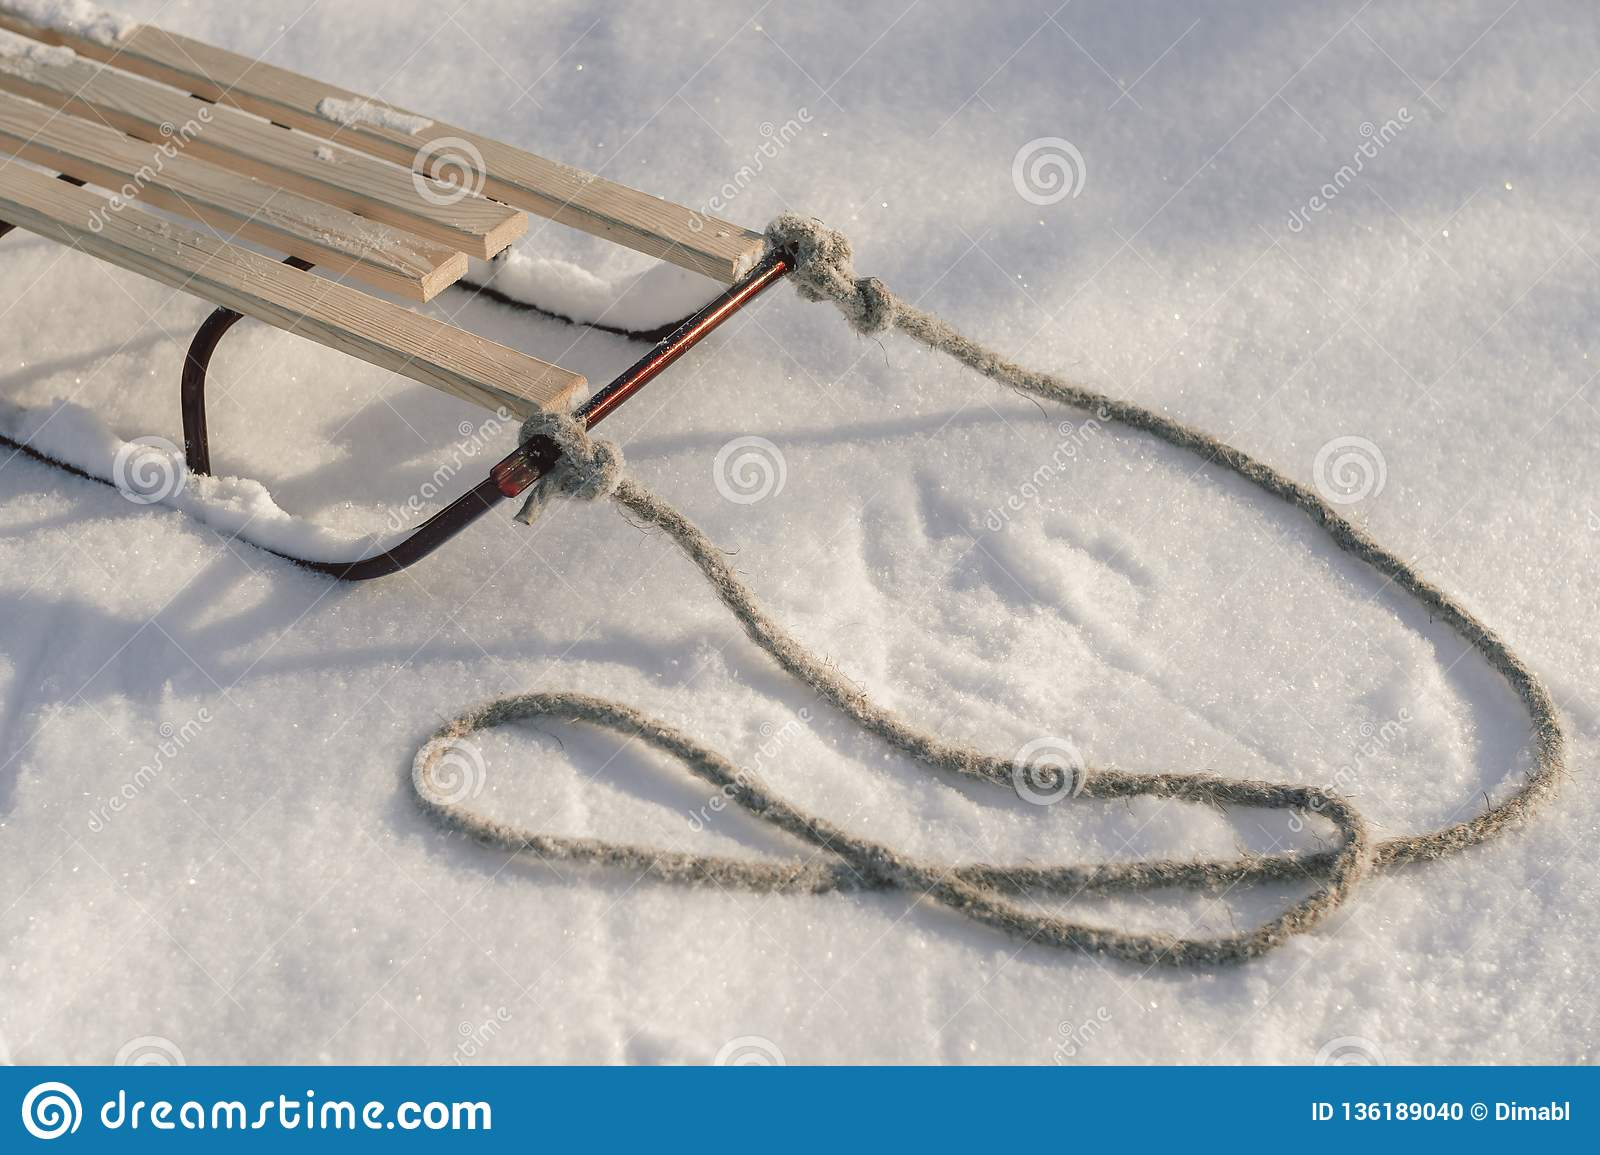 Sledge in Snow, Winter Holidays.